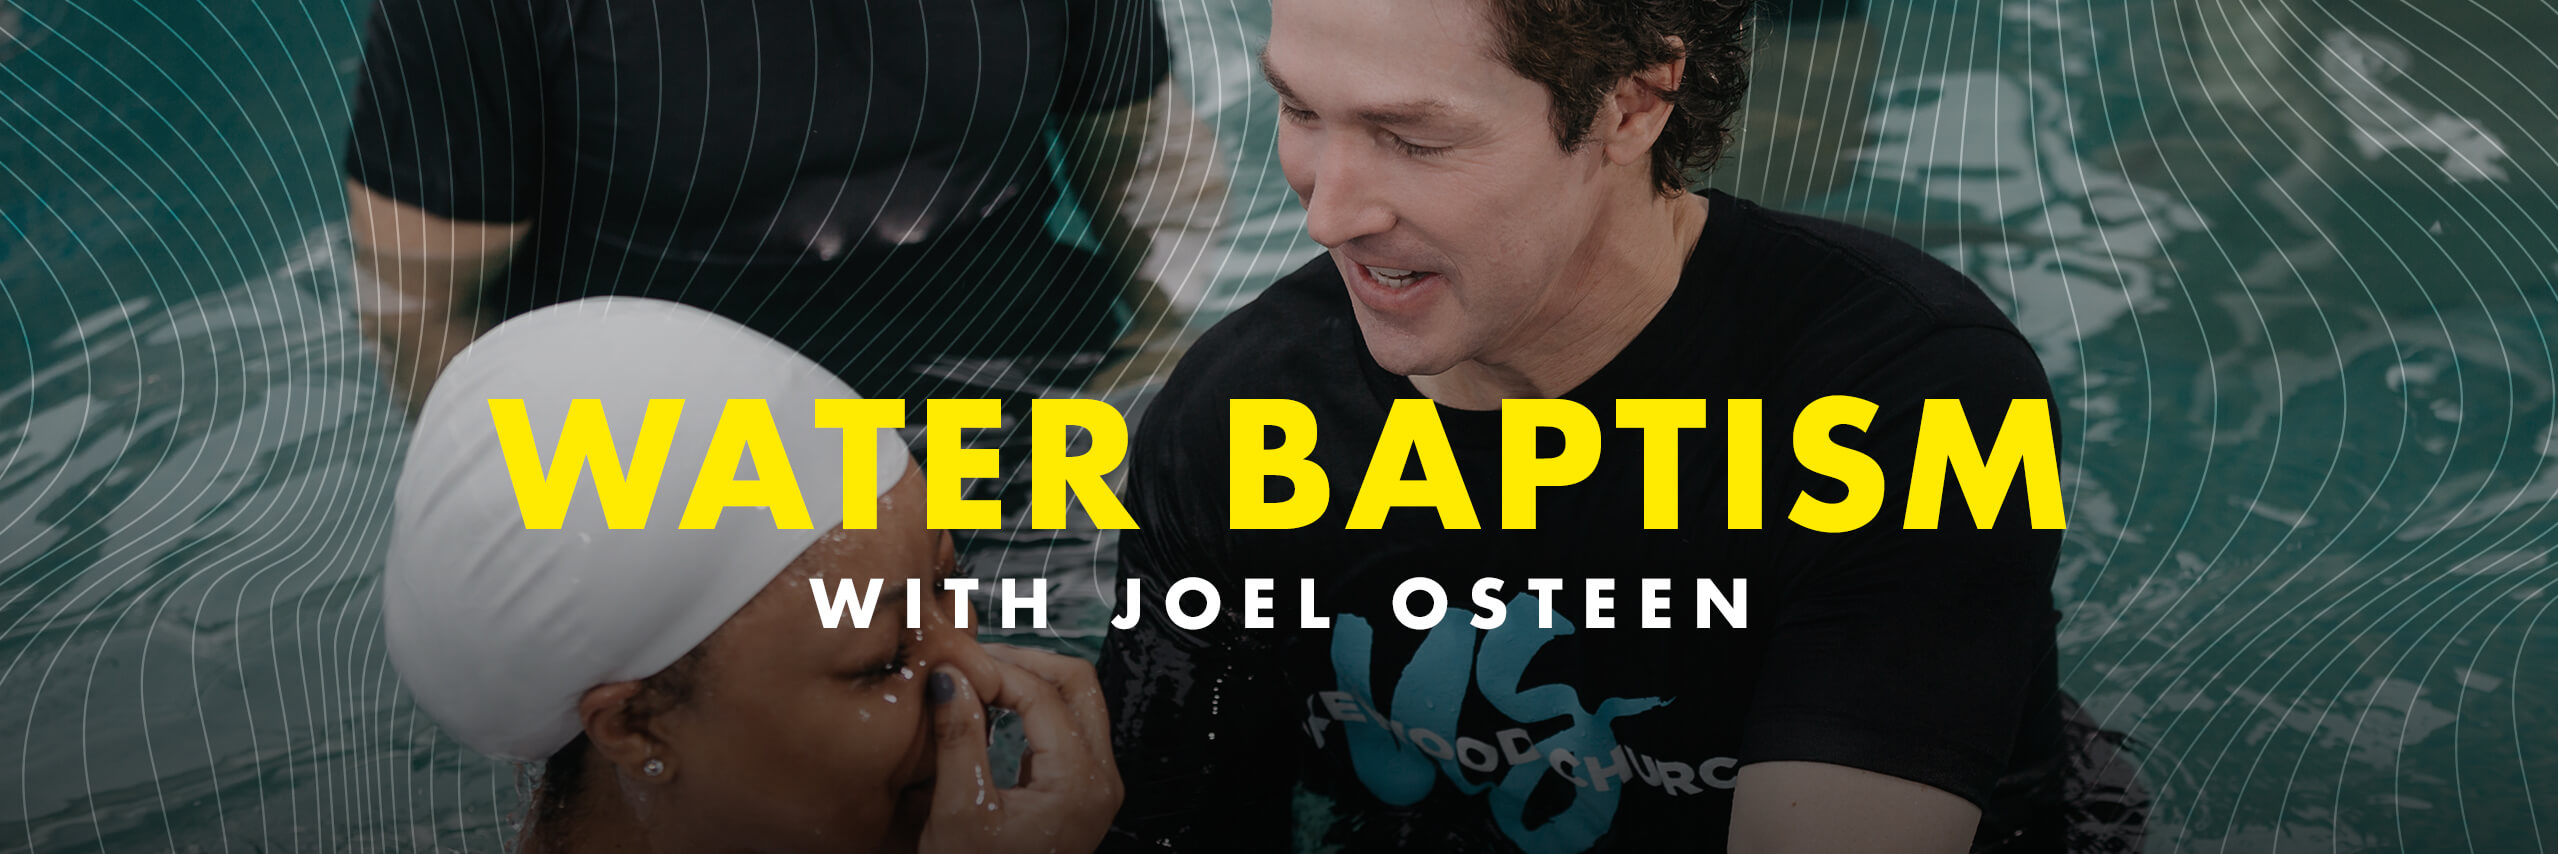 Water Baptism with Joel Osteen